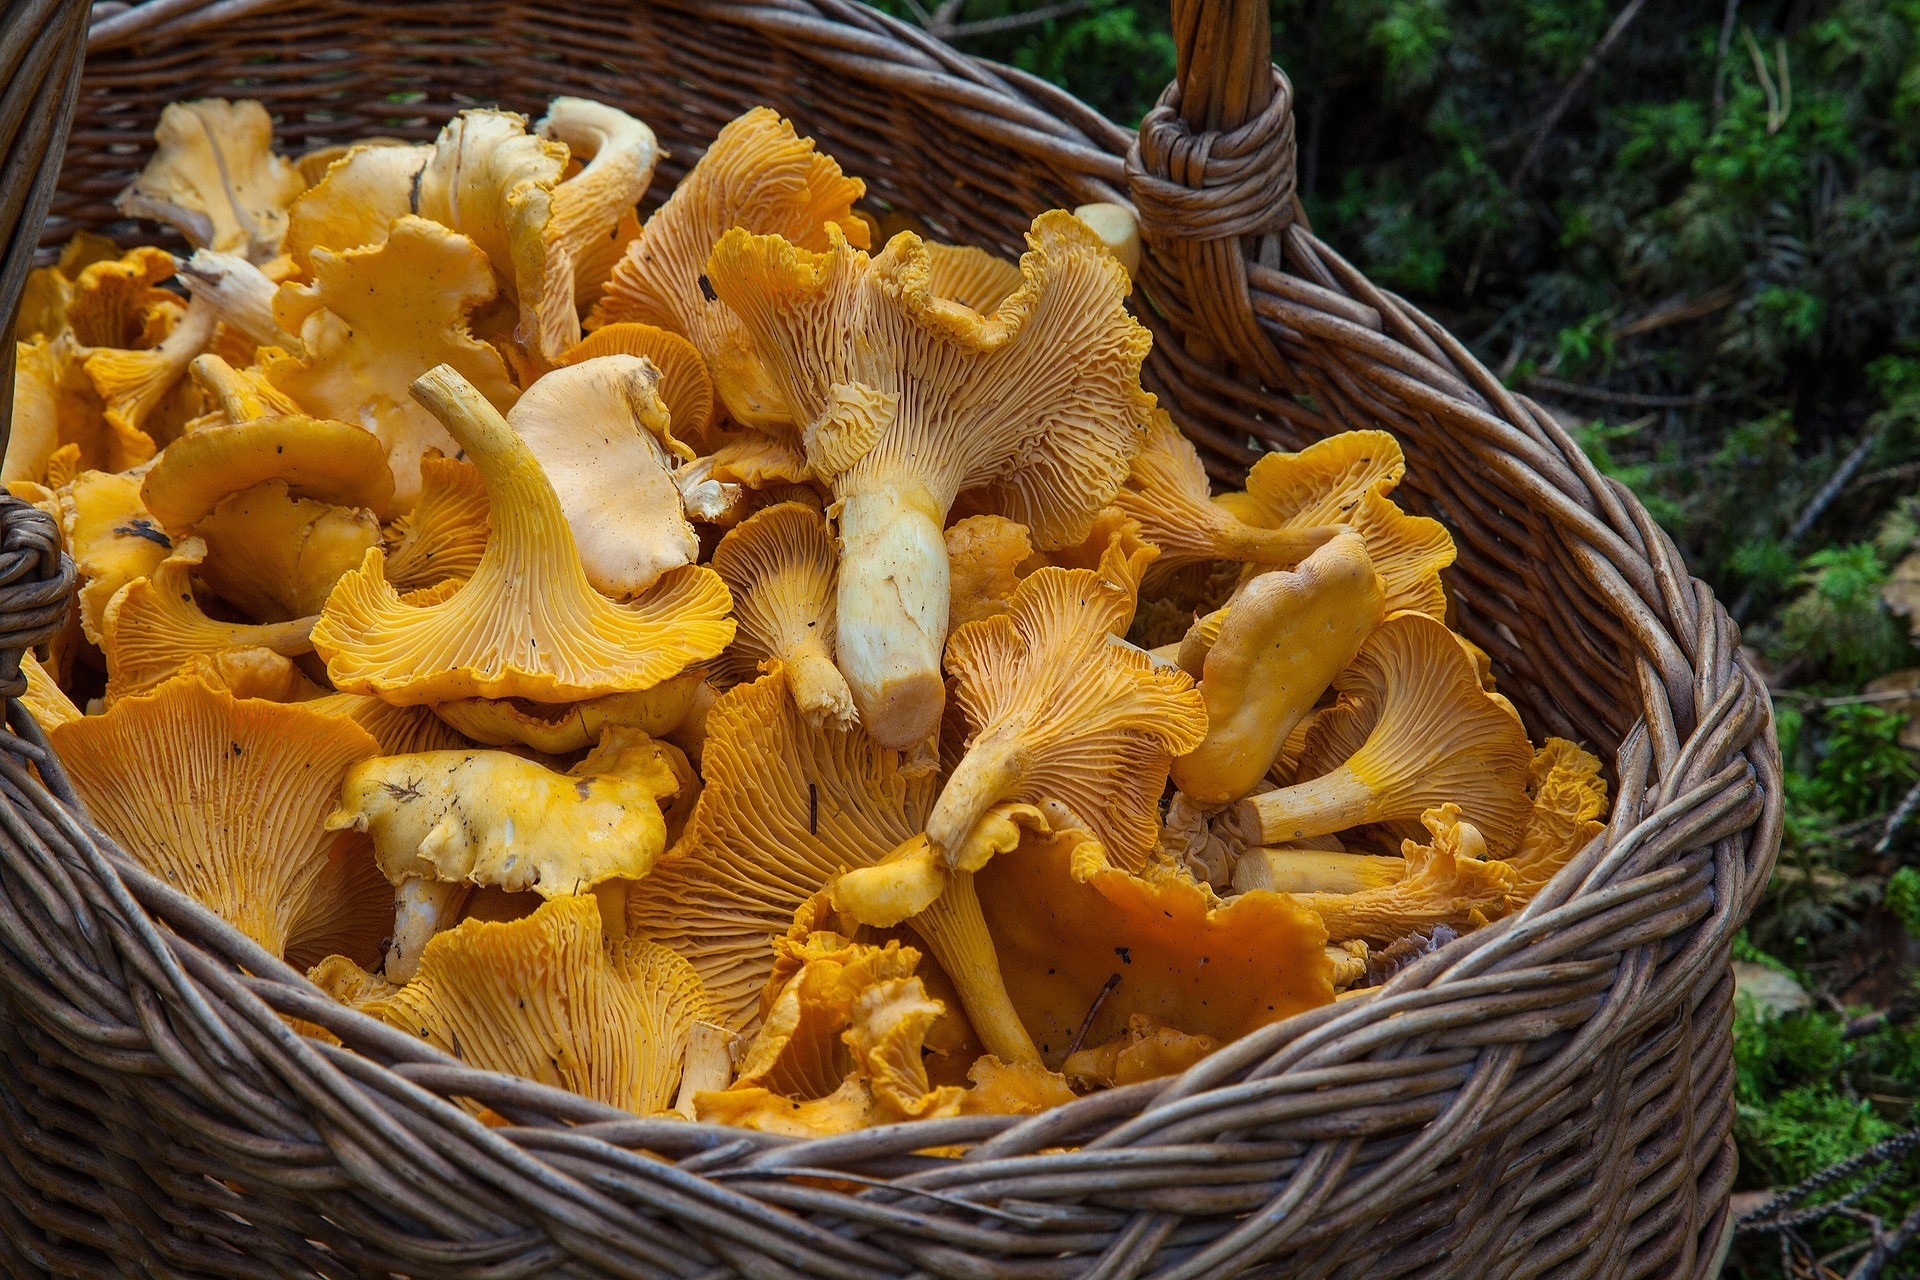 chanterelle mushrooms - most popular of edible varieties